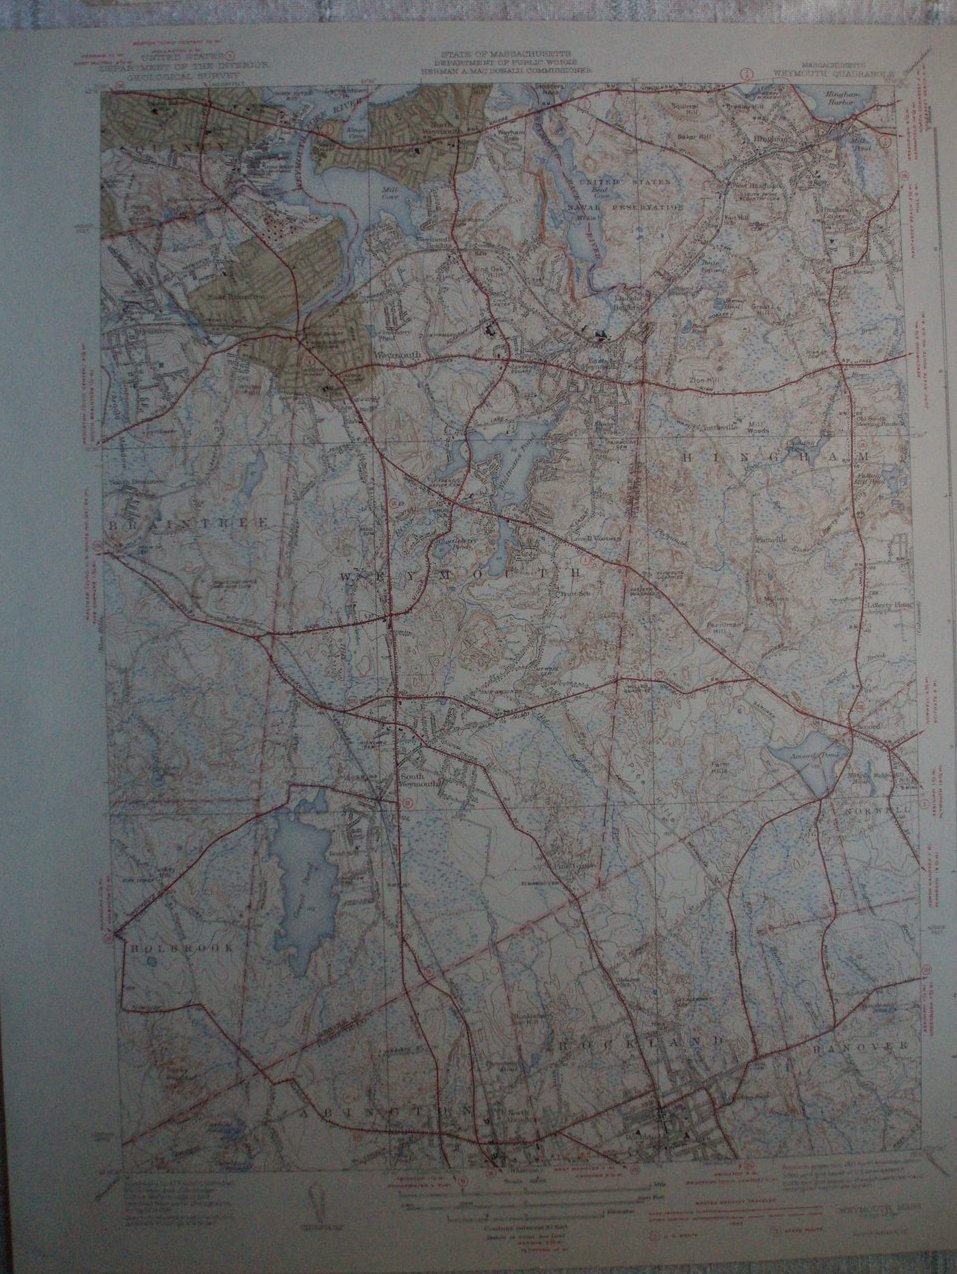 Weymouth MA US Geological Topography Map 1941